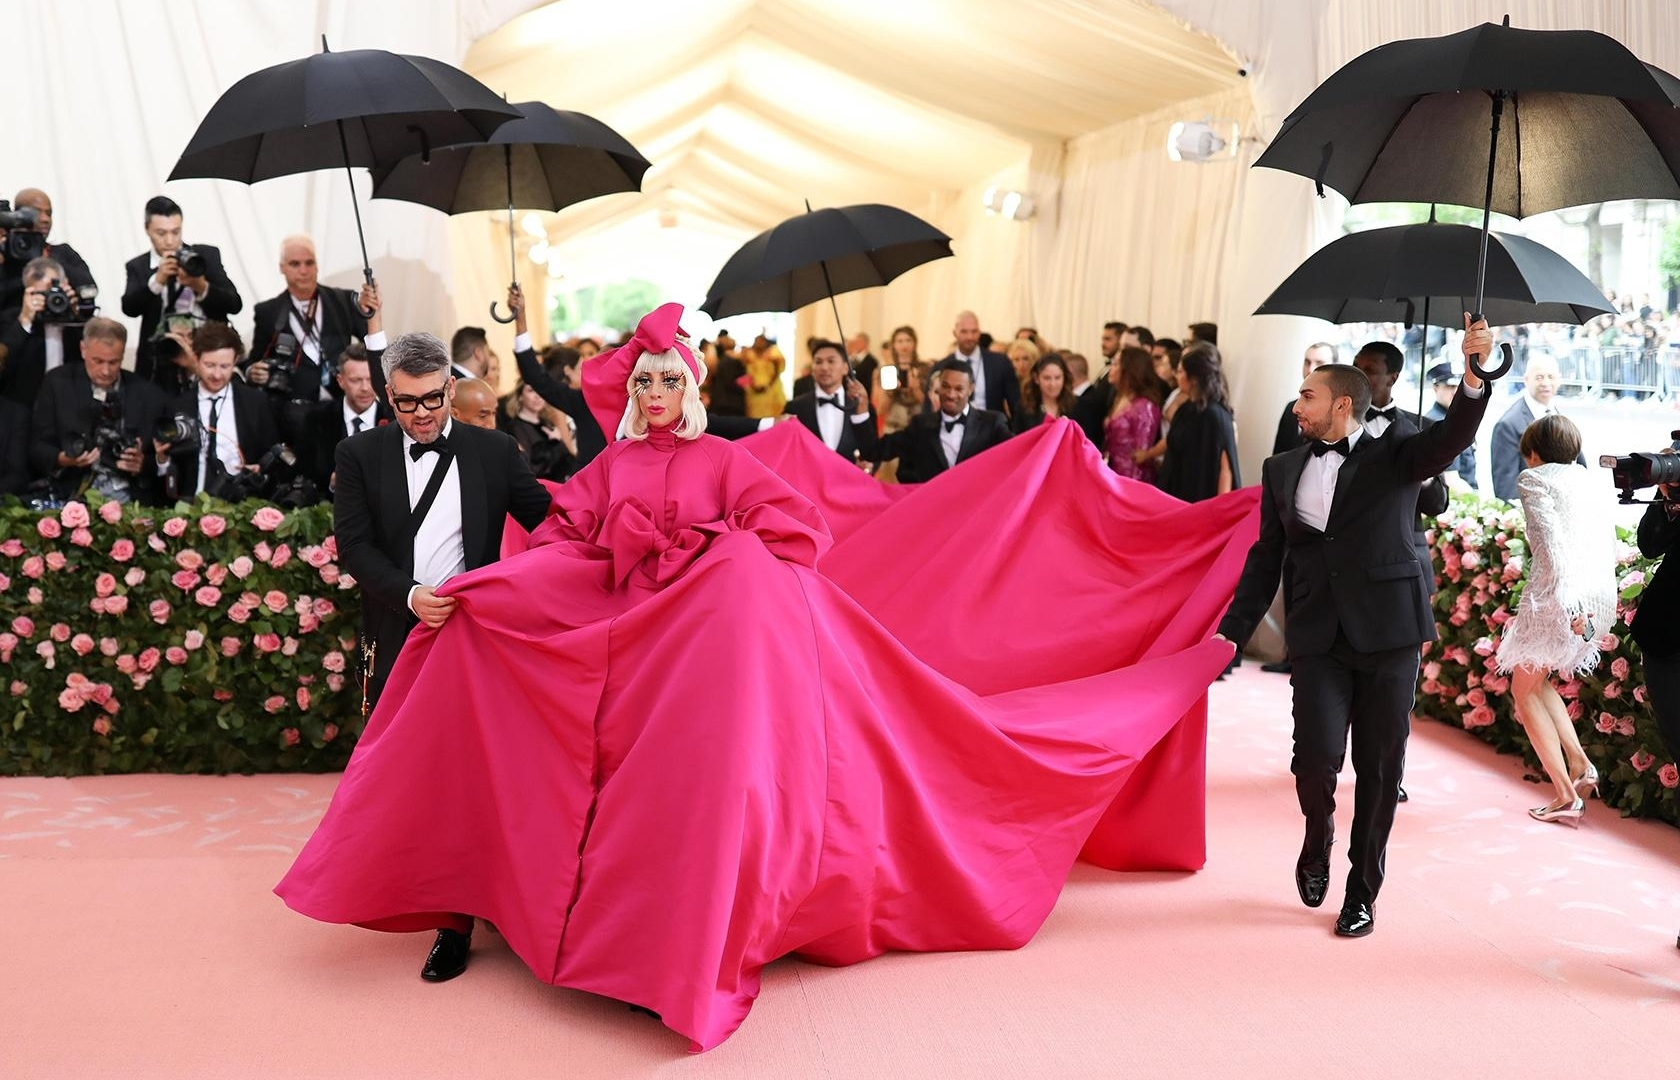 Met Gala 2021: Date, Co-Chairs, And American Fashion Theme